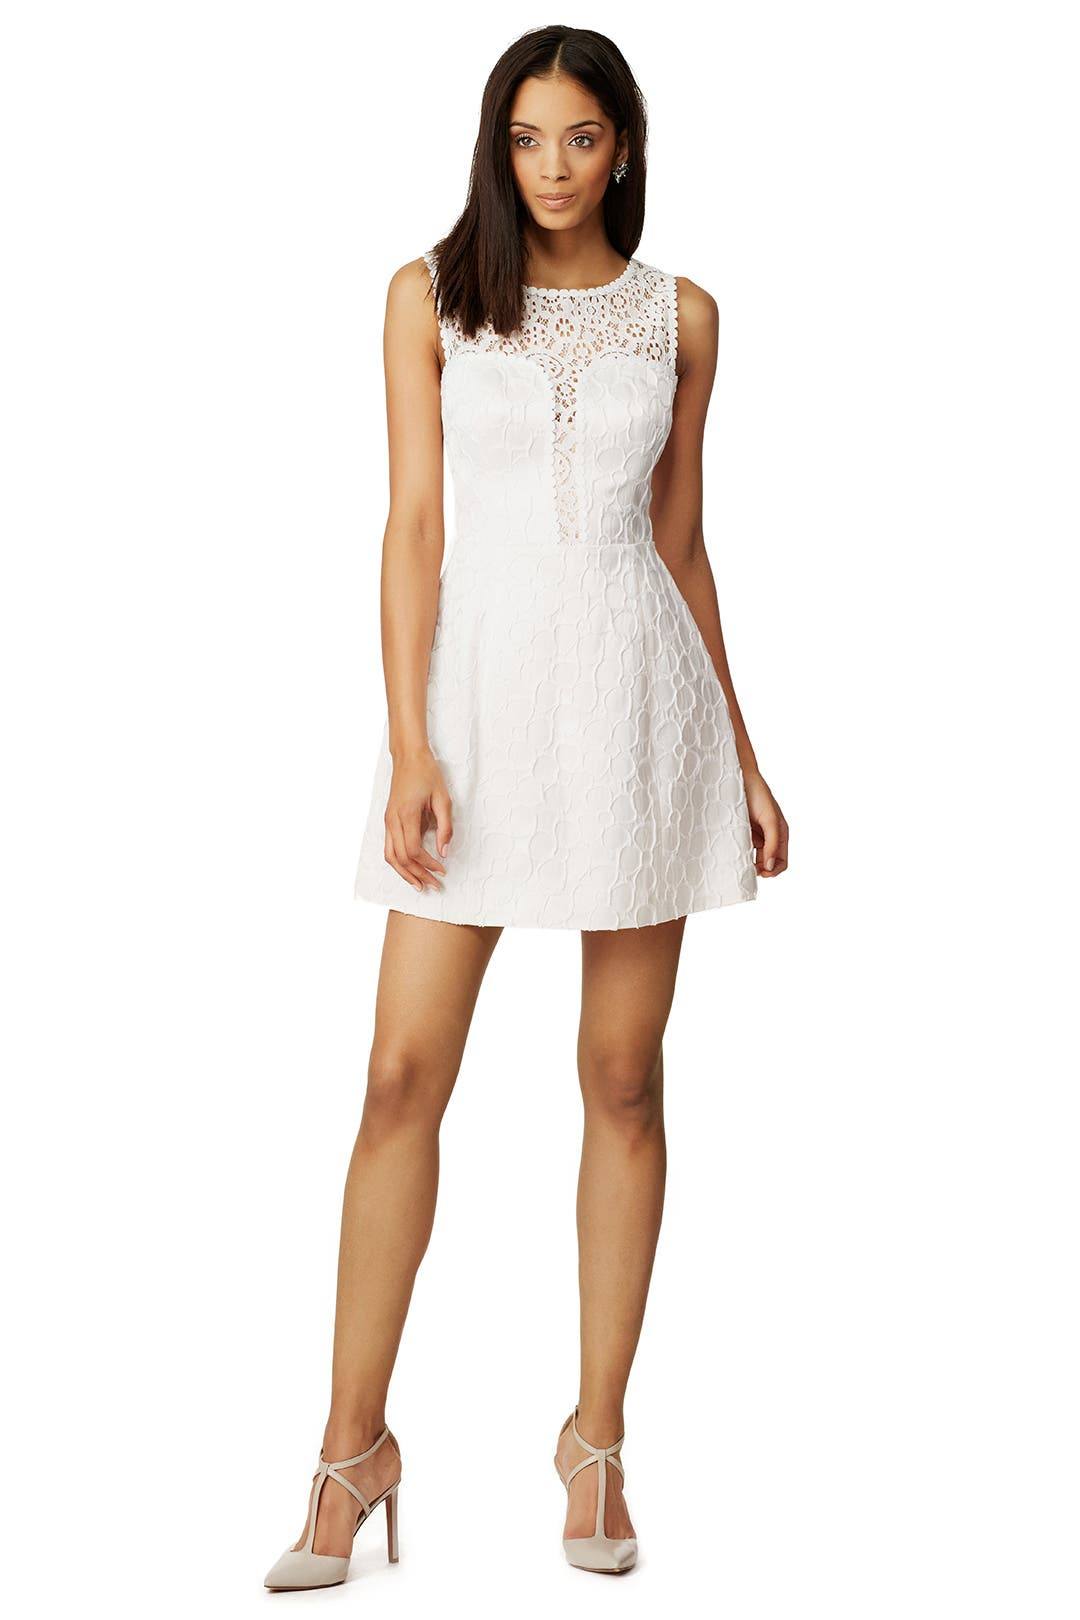 Lilly Pulitzer White Dresses On Sale White Zoe Dress by Lilly